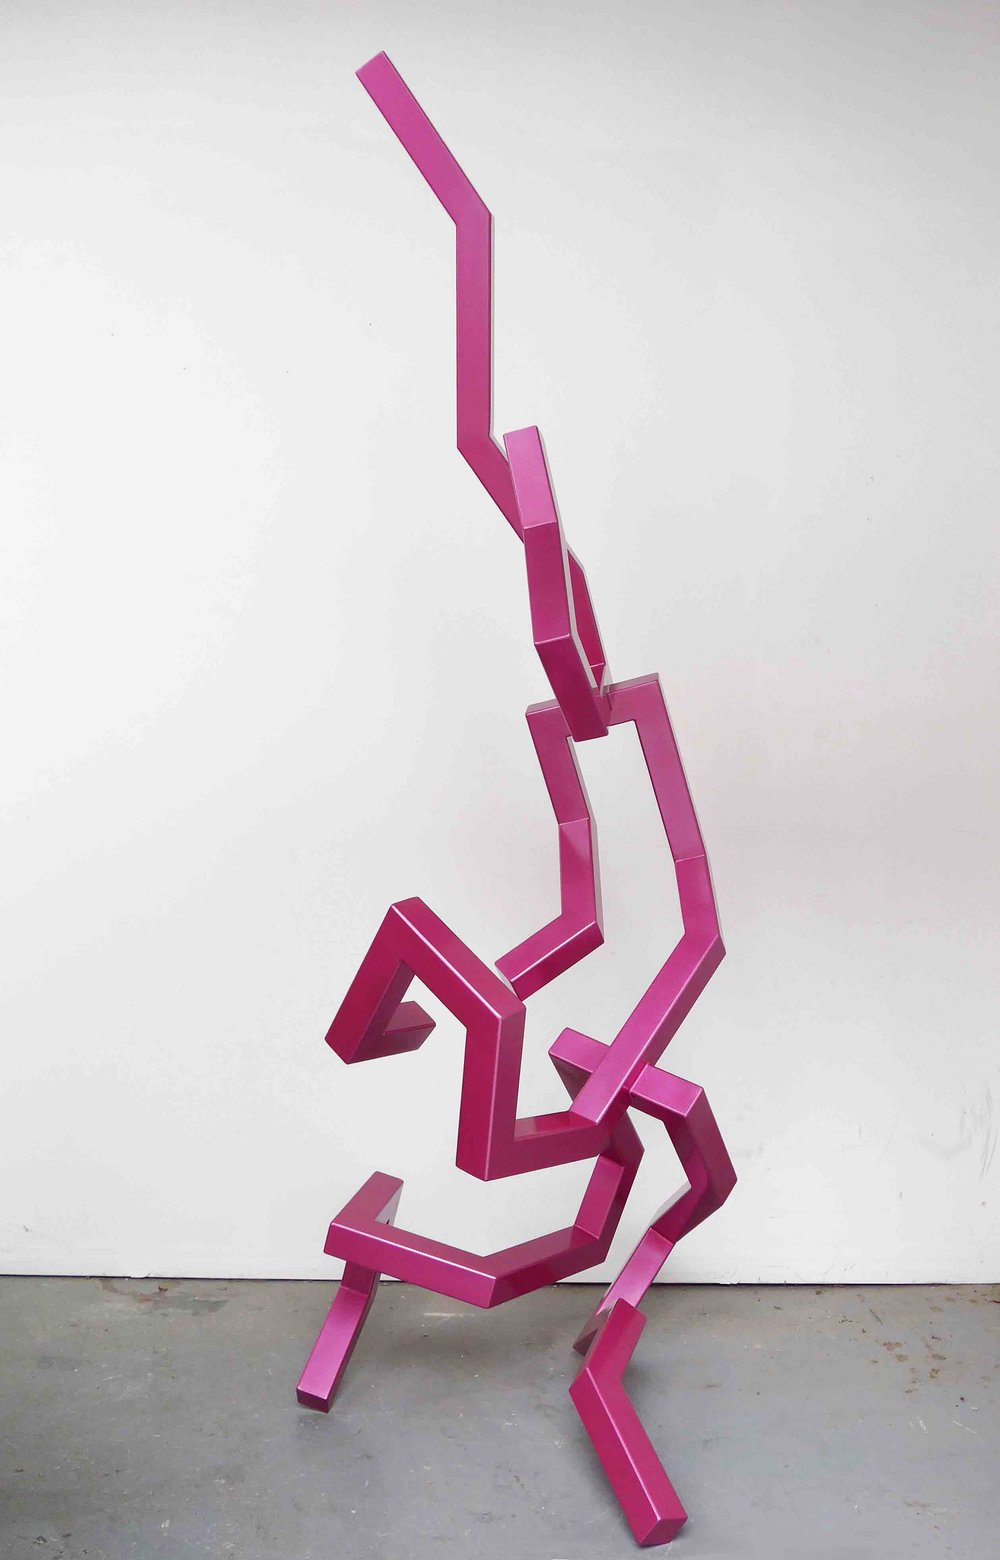 CALEB SHEA   Untitled (Sparkled Magenta)  2016 stainless steel, polyurethane paint 223 x 96 x 80 cm